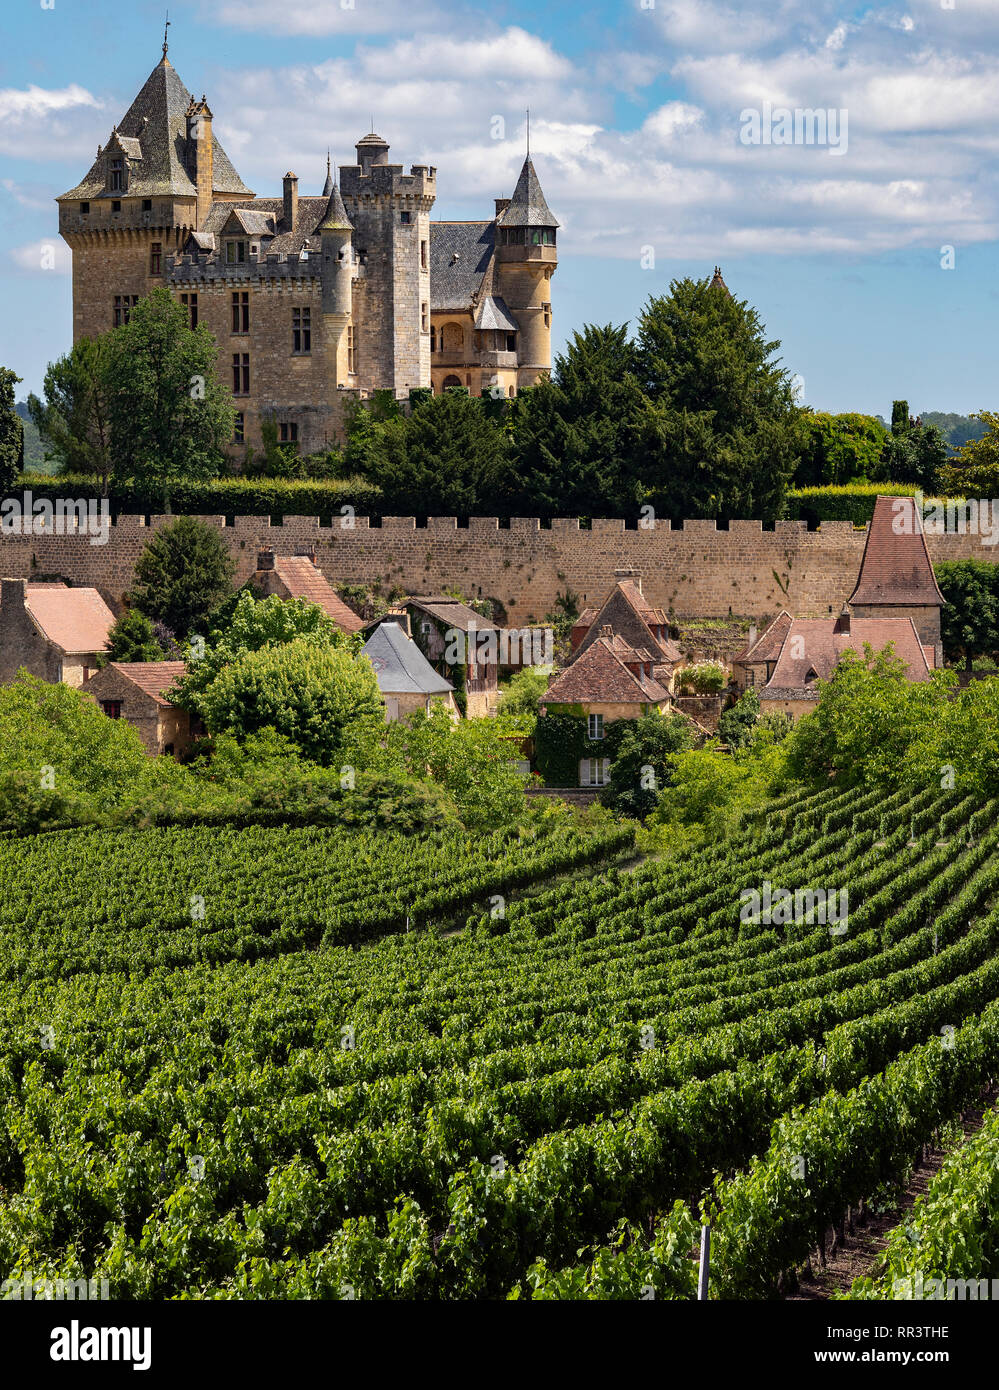 Chateau de Montfort - a castle in the French commune of Vitrac in the Dordogne region of France. Stock Photo